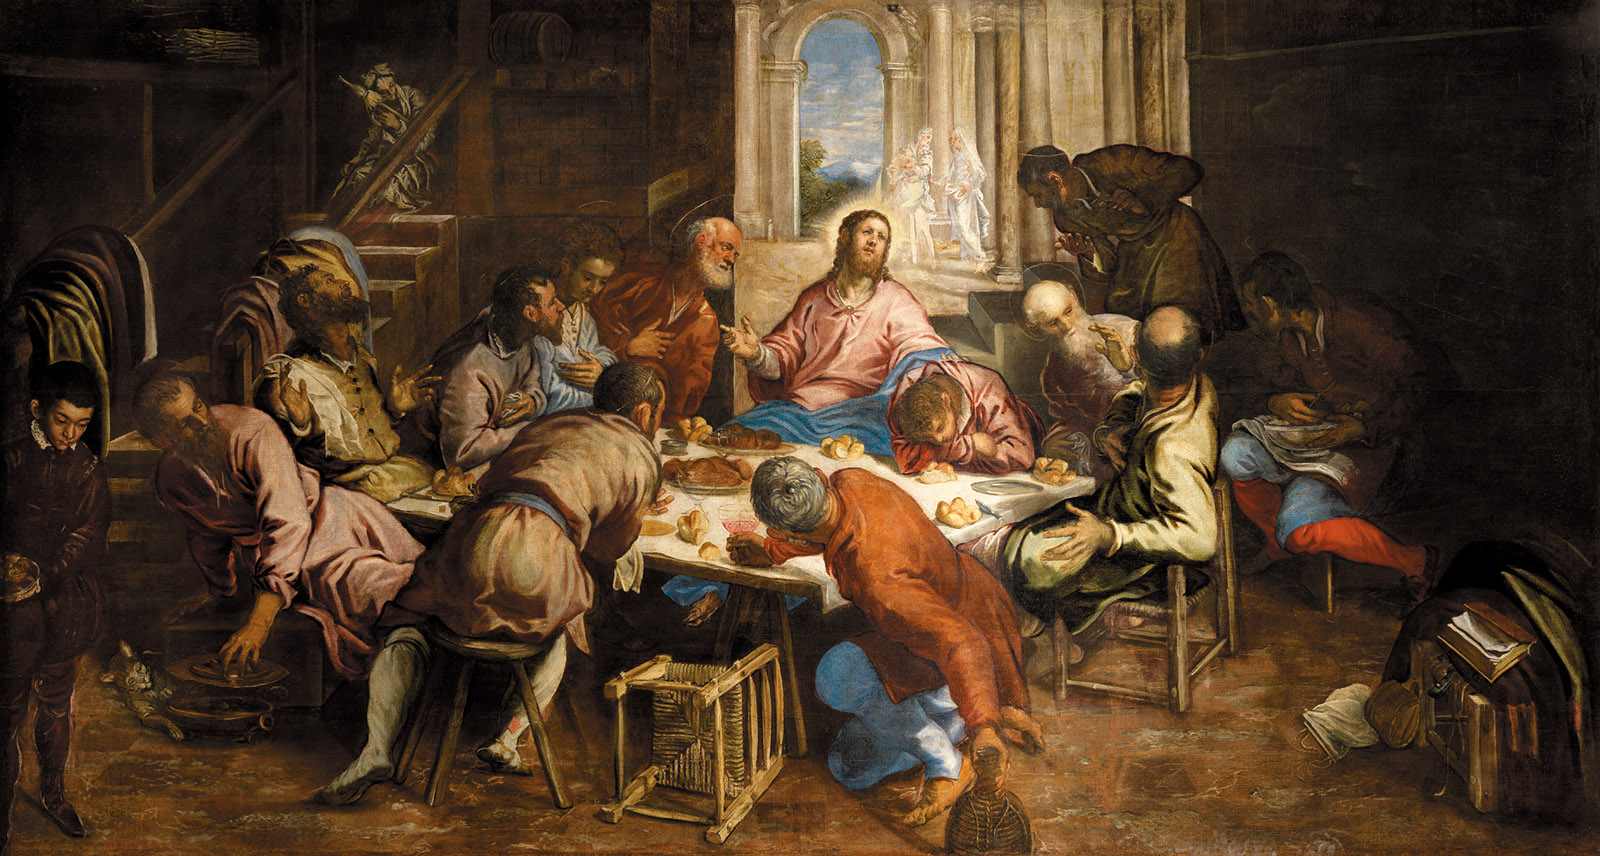 The Last Supper by Jacopo Tintoretto